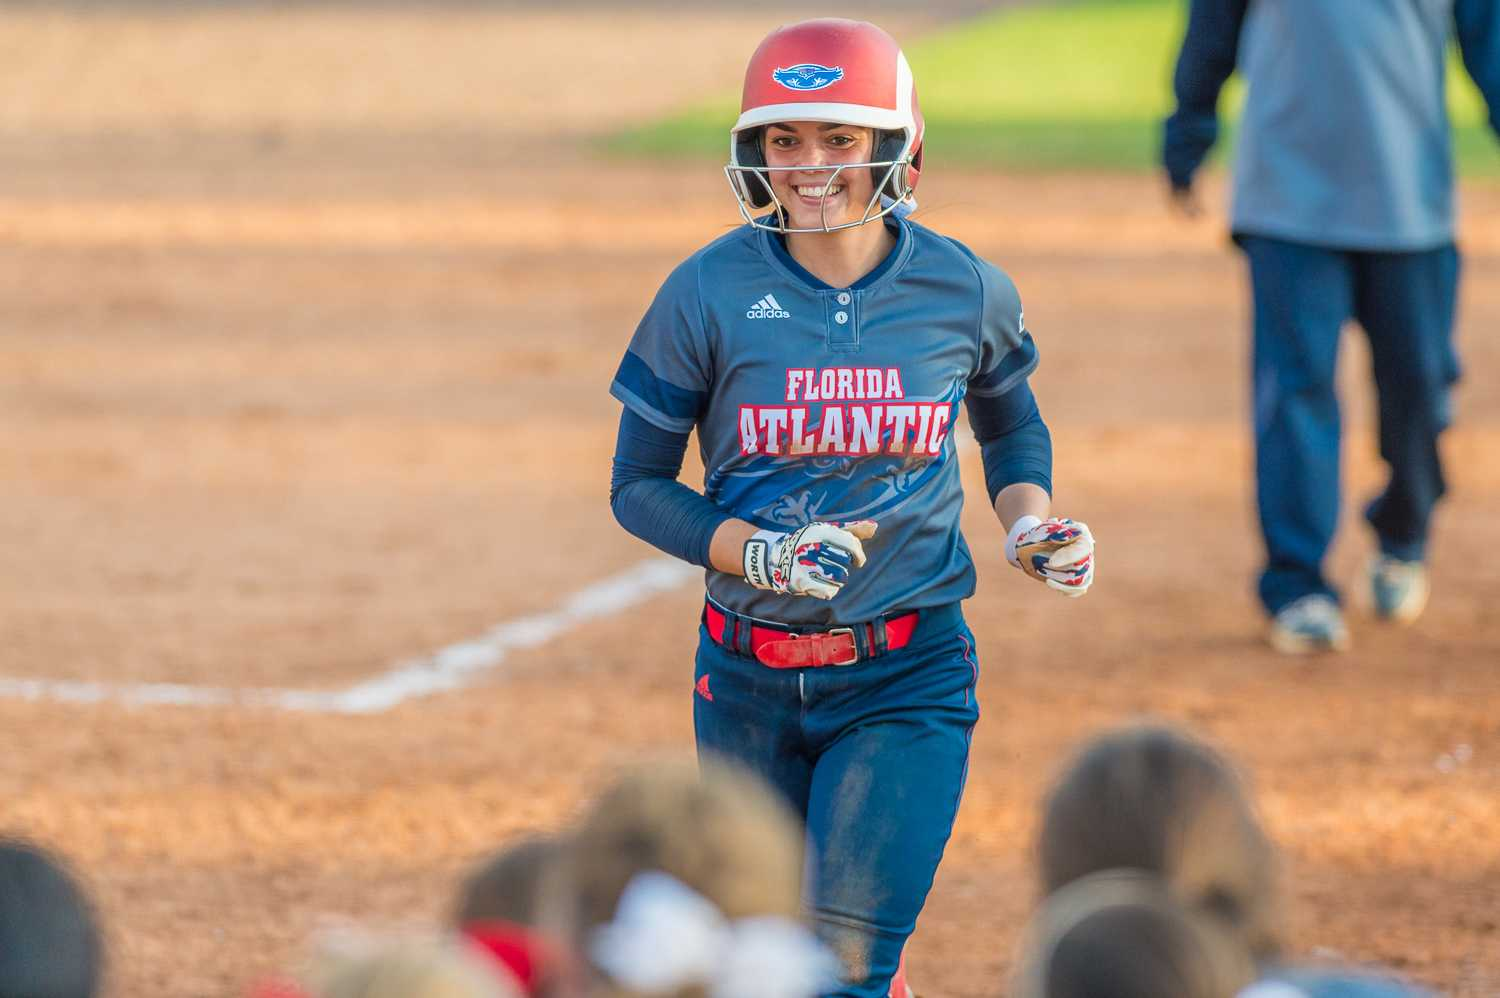 Melissa Martinez (3) smiles as she runs towards teammates gathered around home plate after her two-run home run in the third.